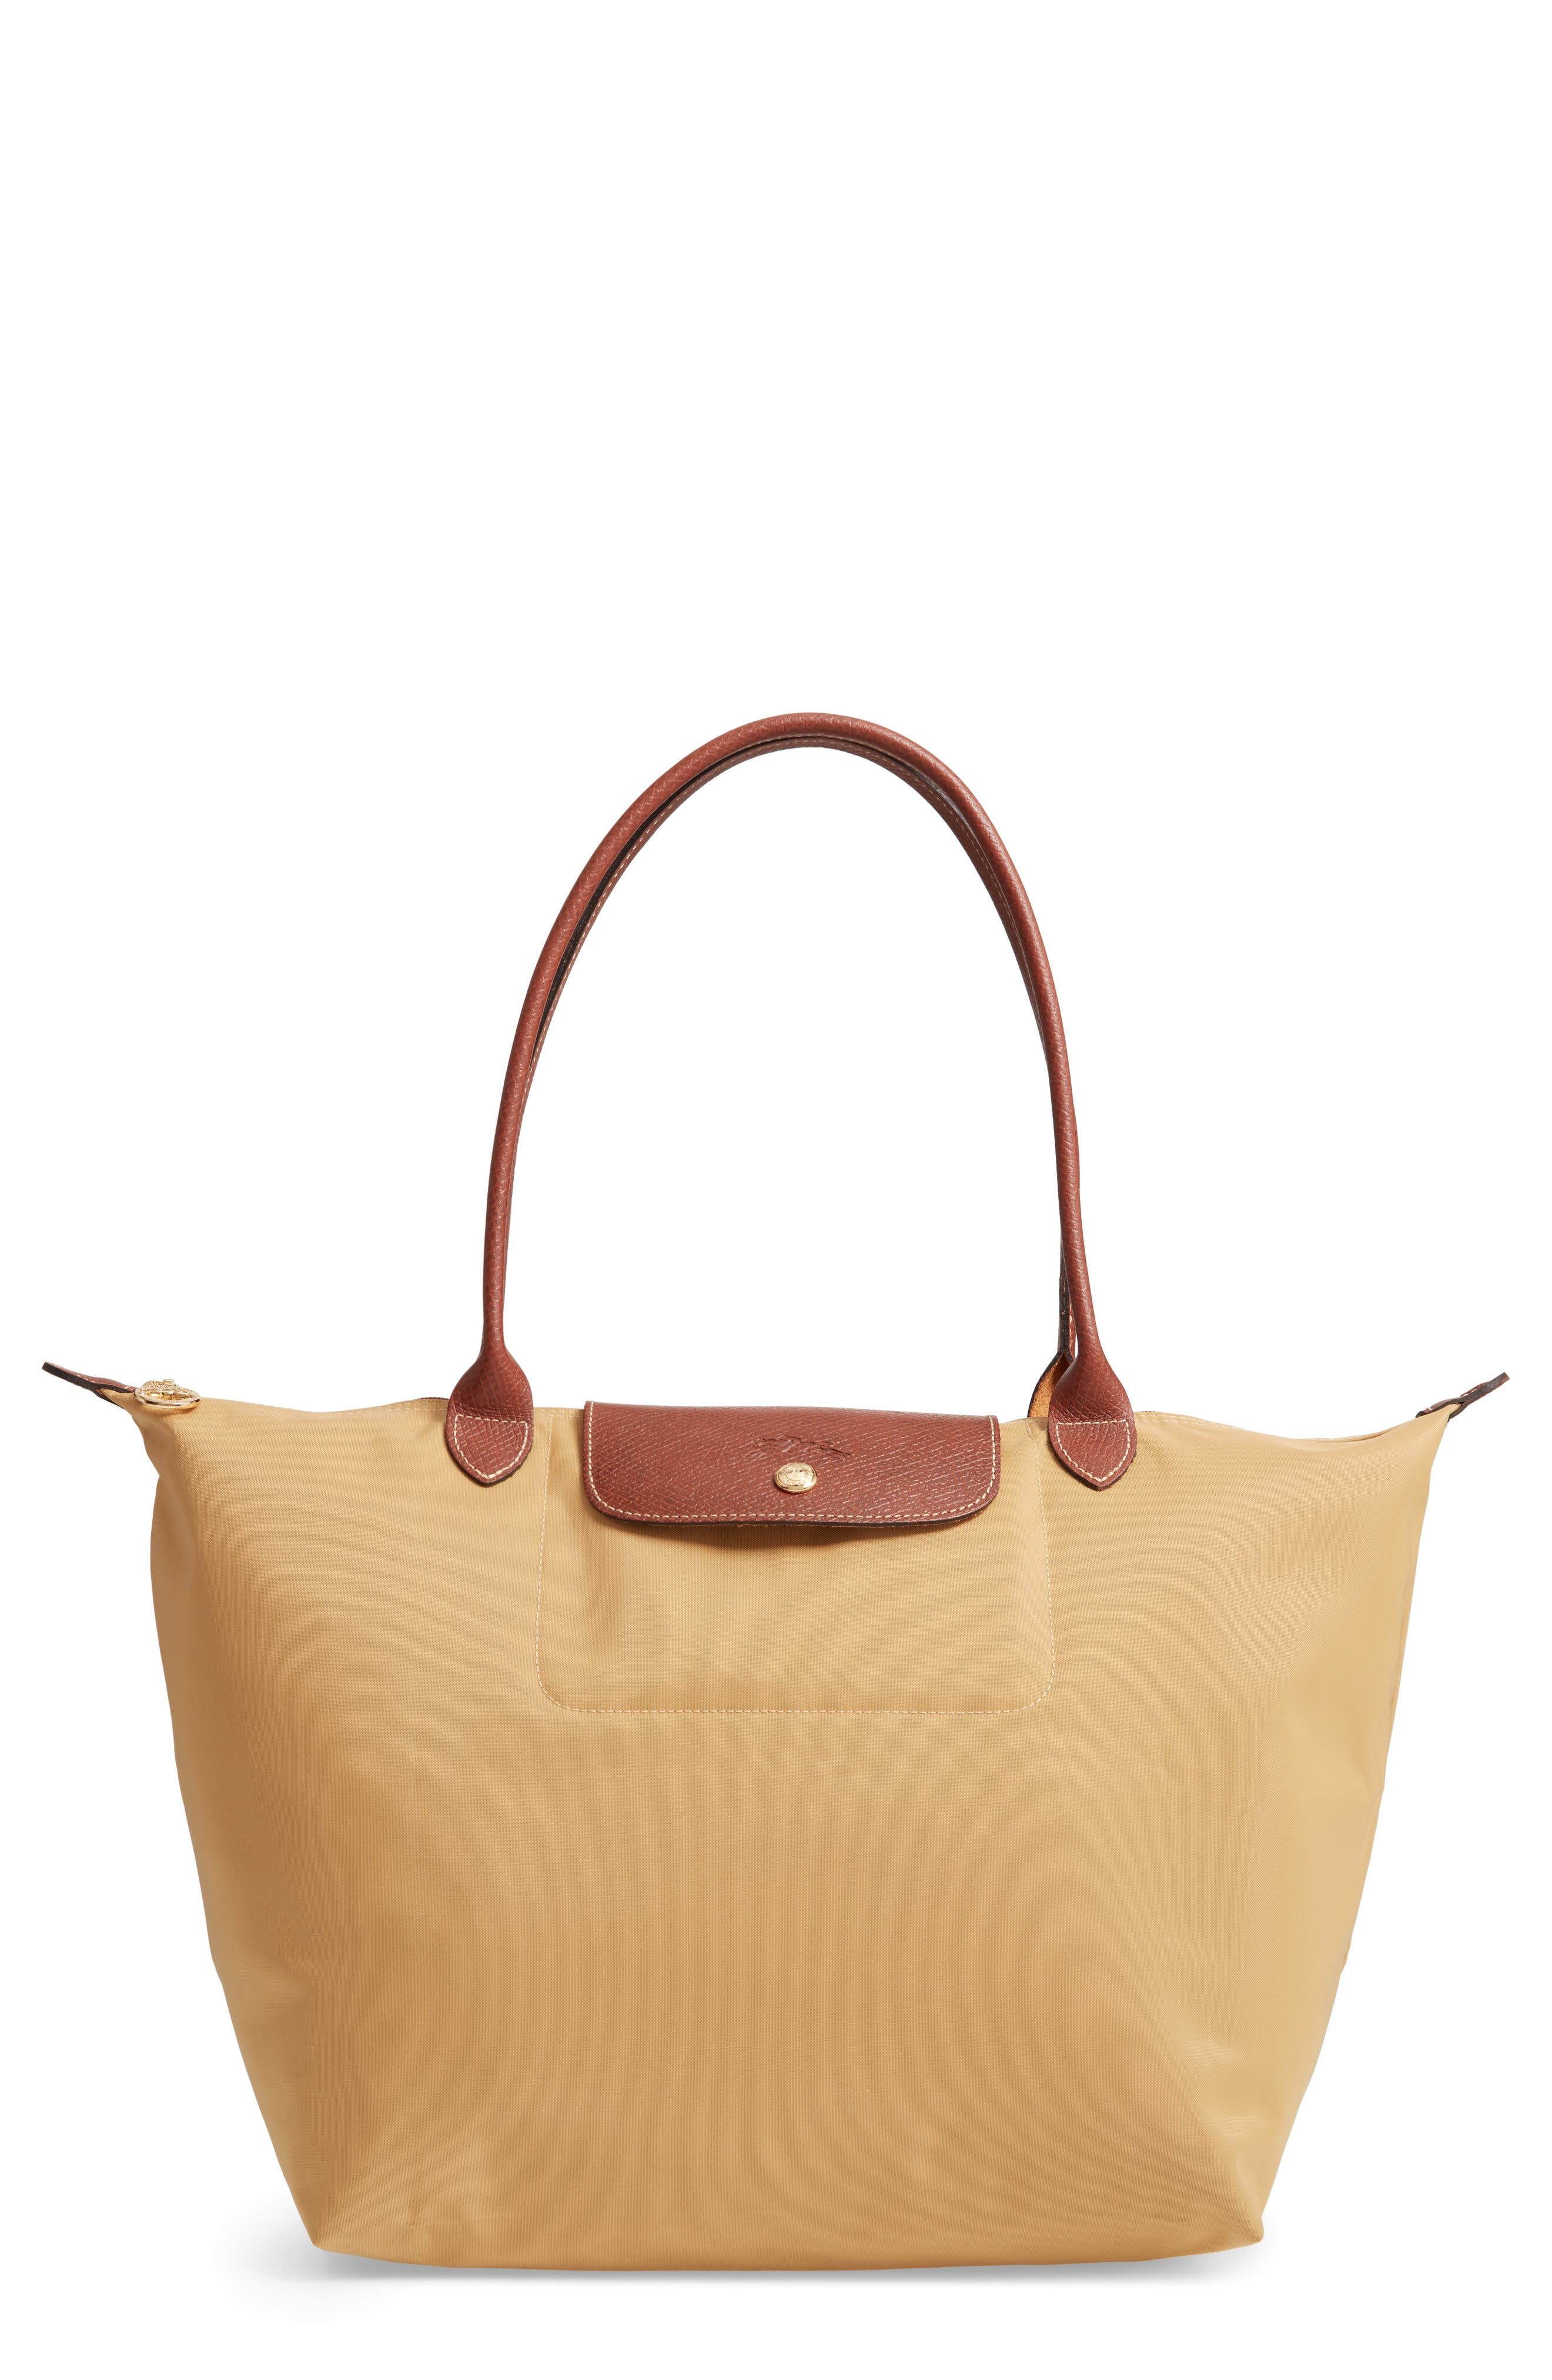 'Large Le Pliage' Tote,                             Main thumbnail 1, color,                             HONEY